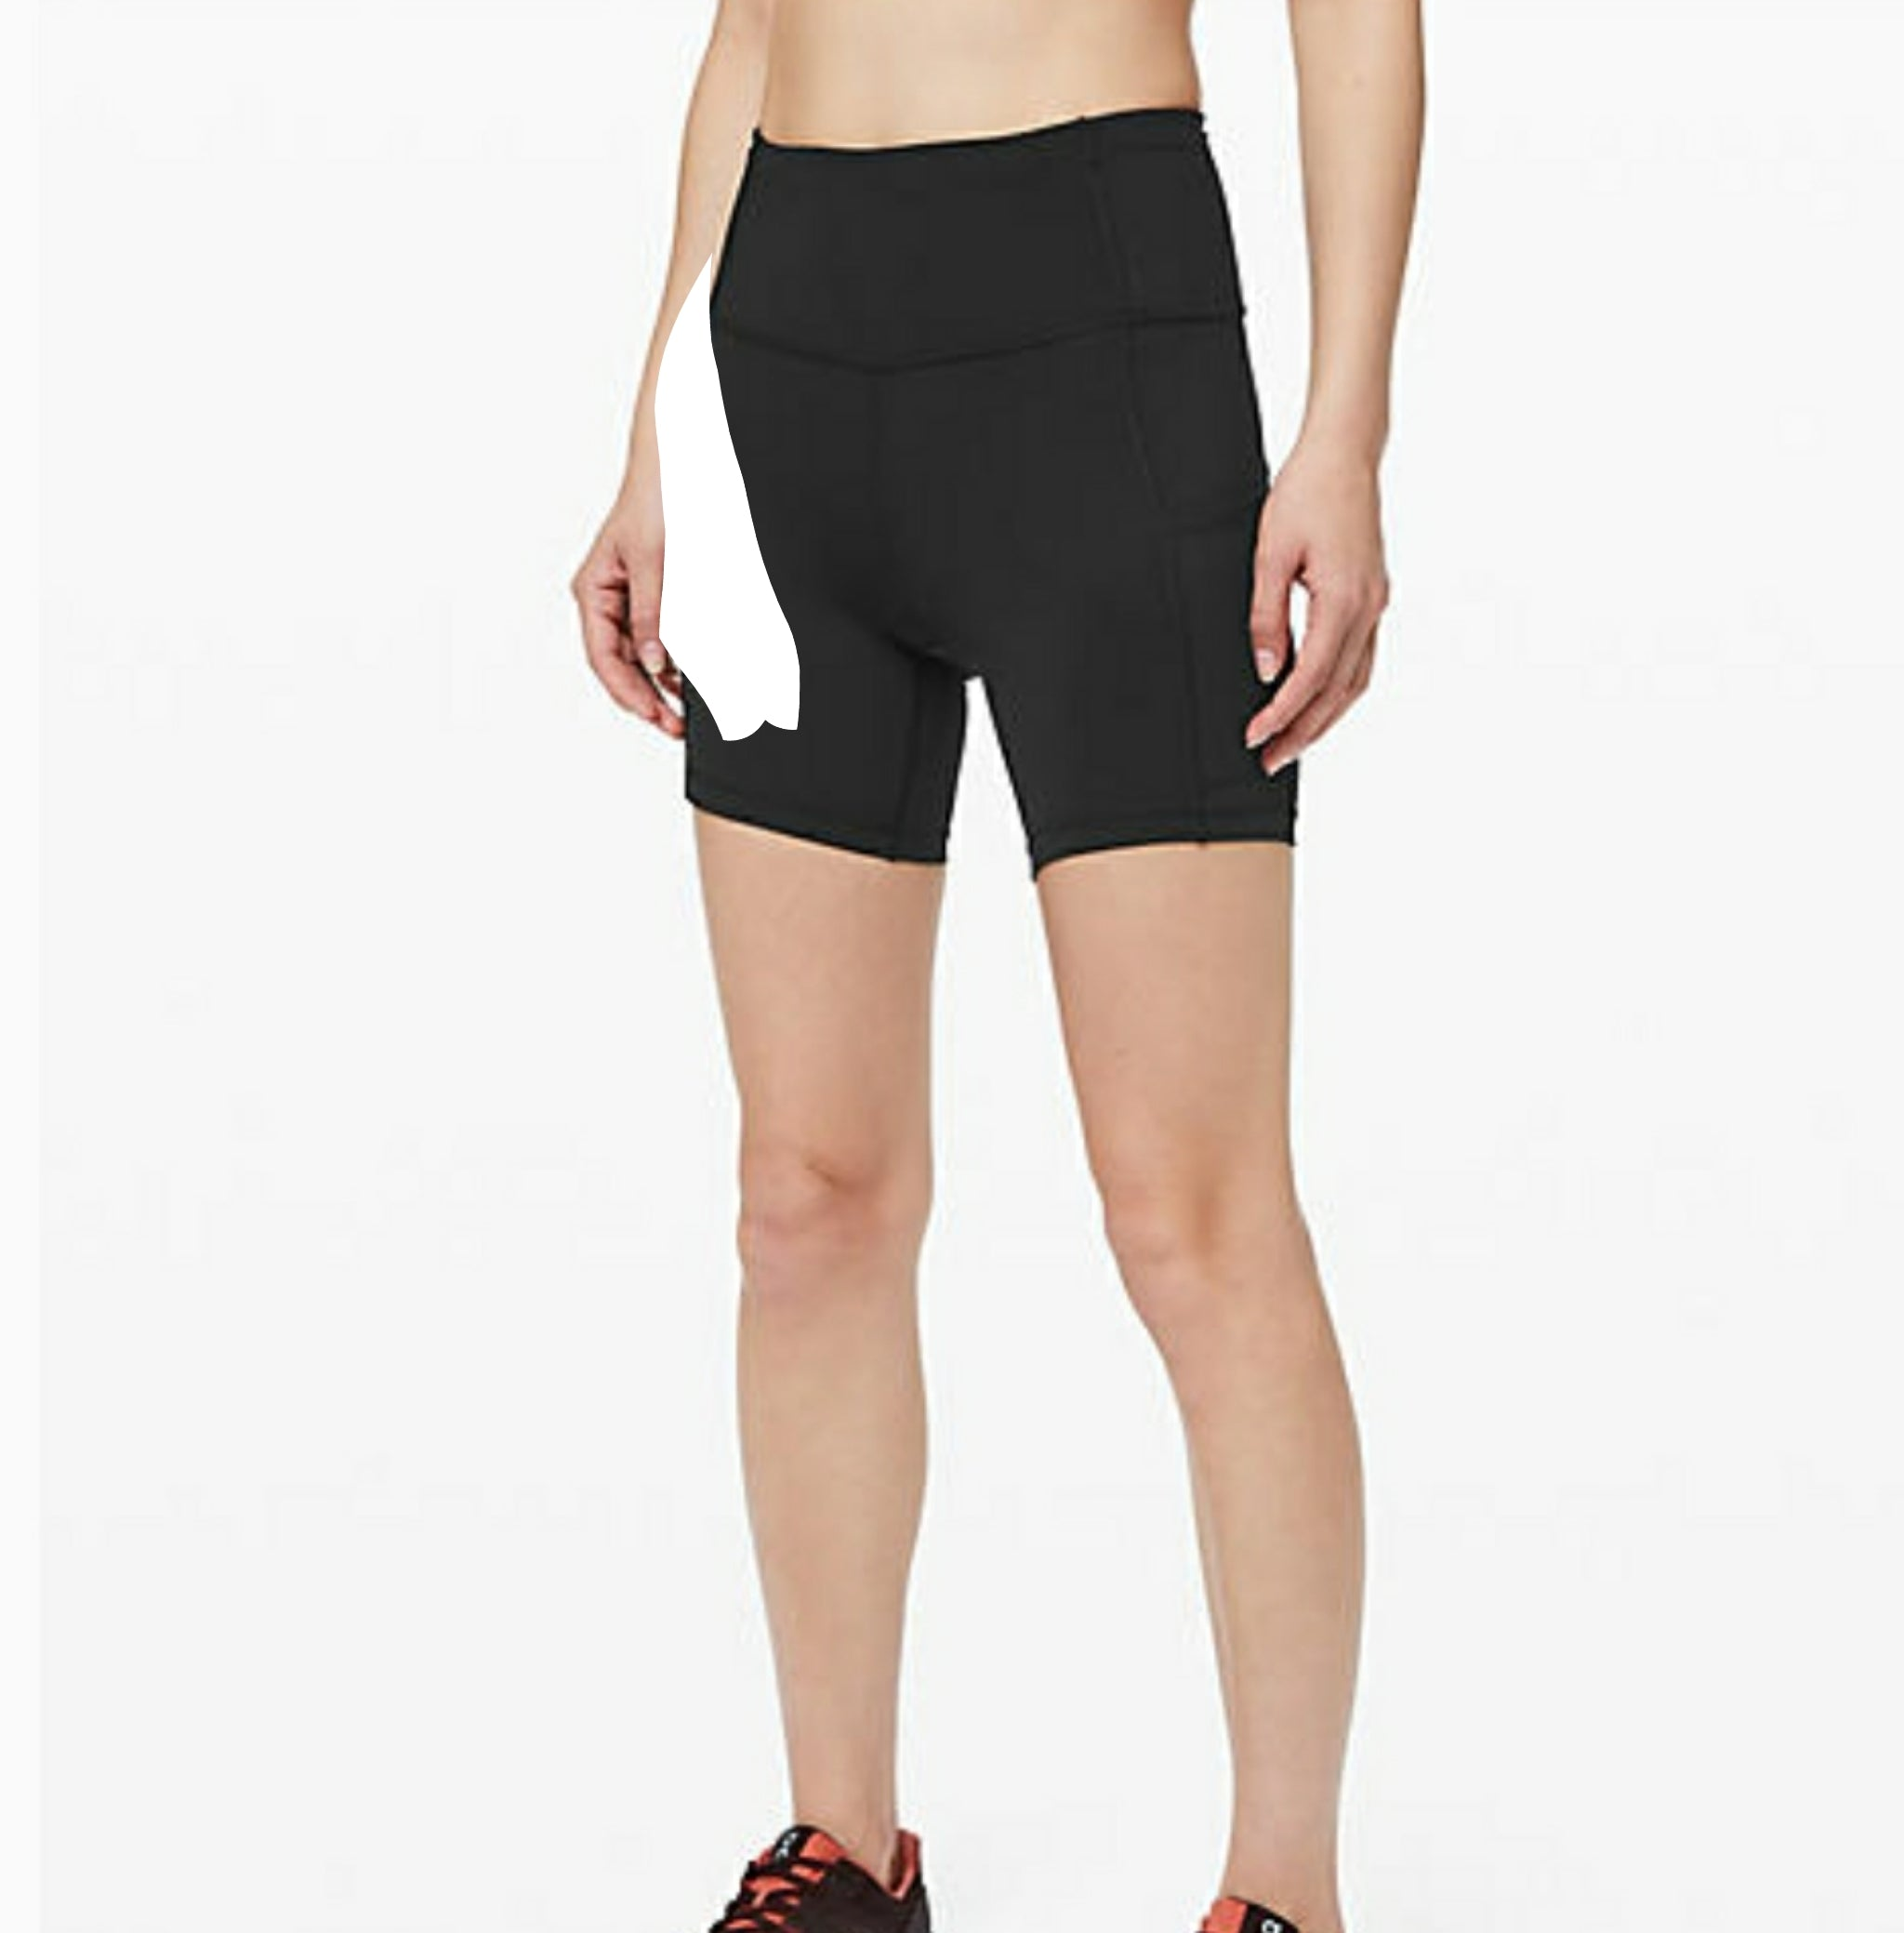 Sweaty Tee workout shorts - black